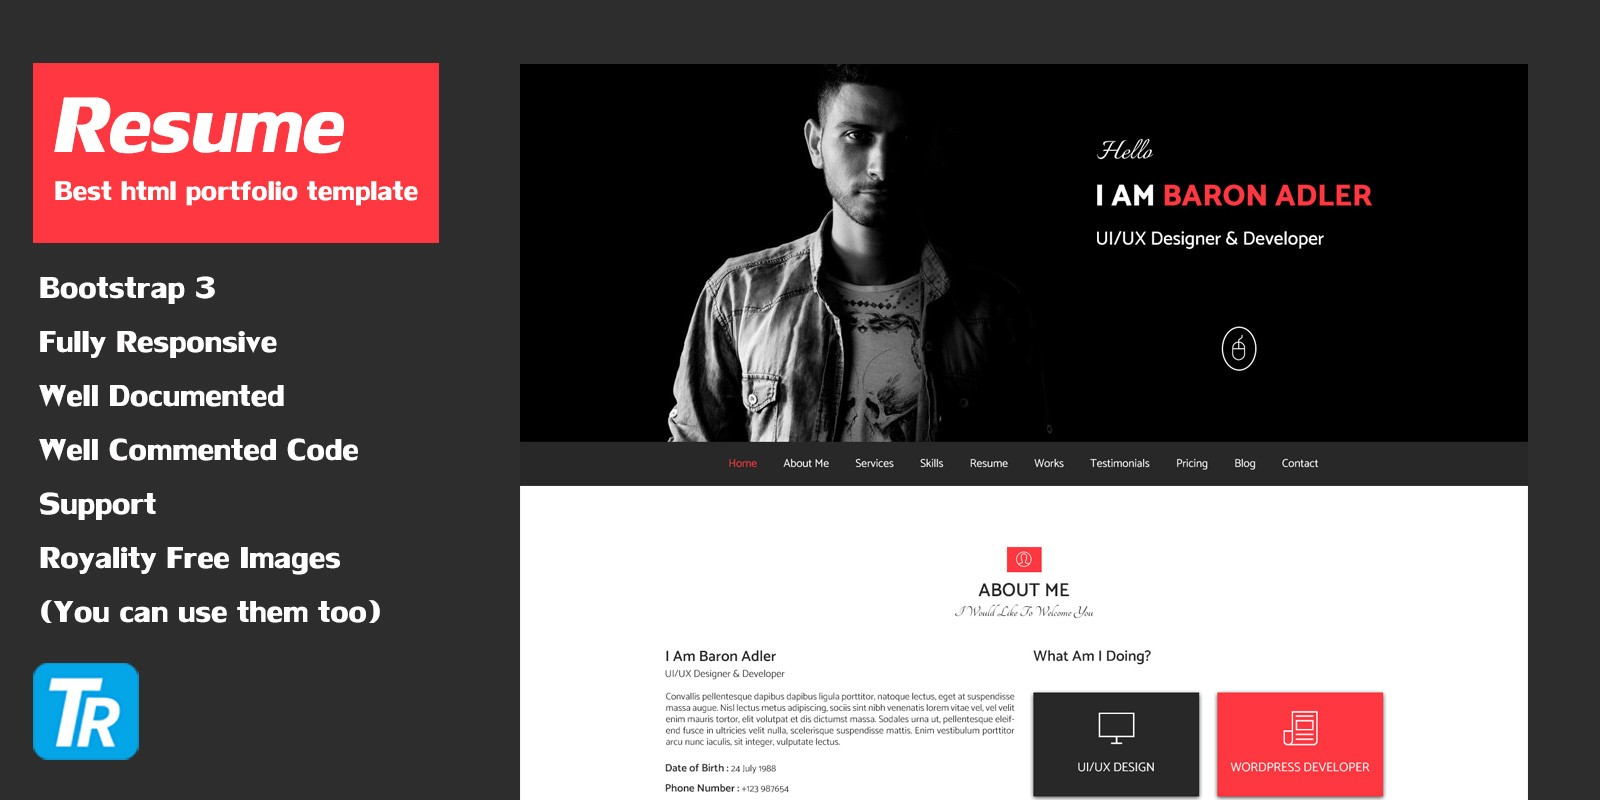 Resume   Personal Portfolio Web Template   HTML Resume Website